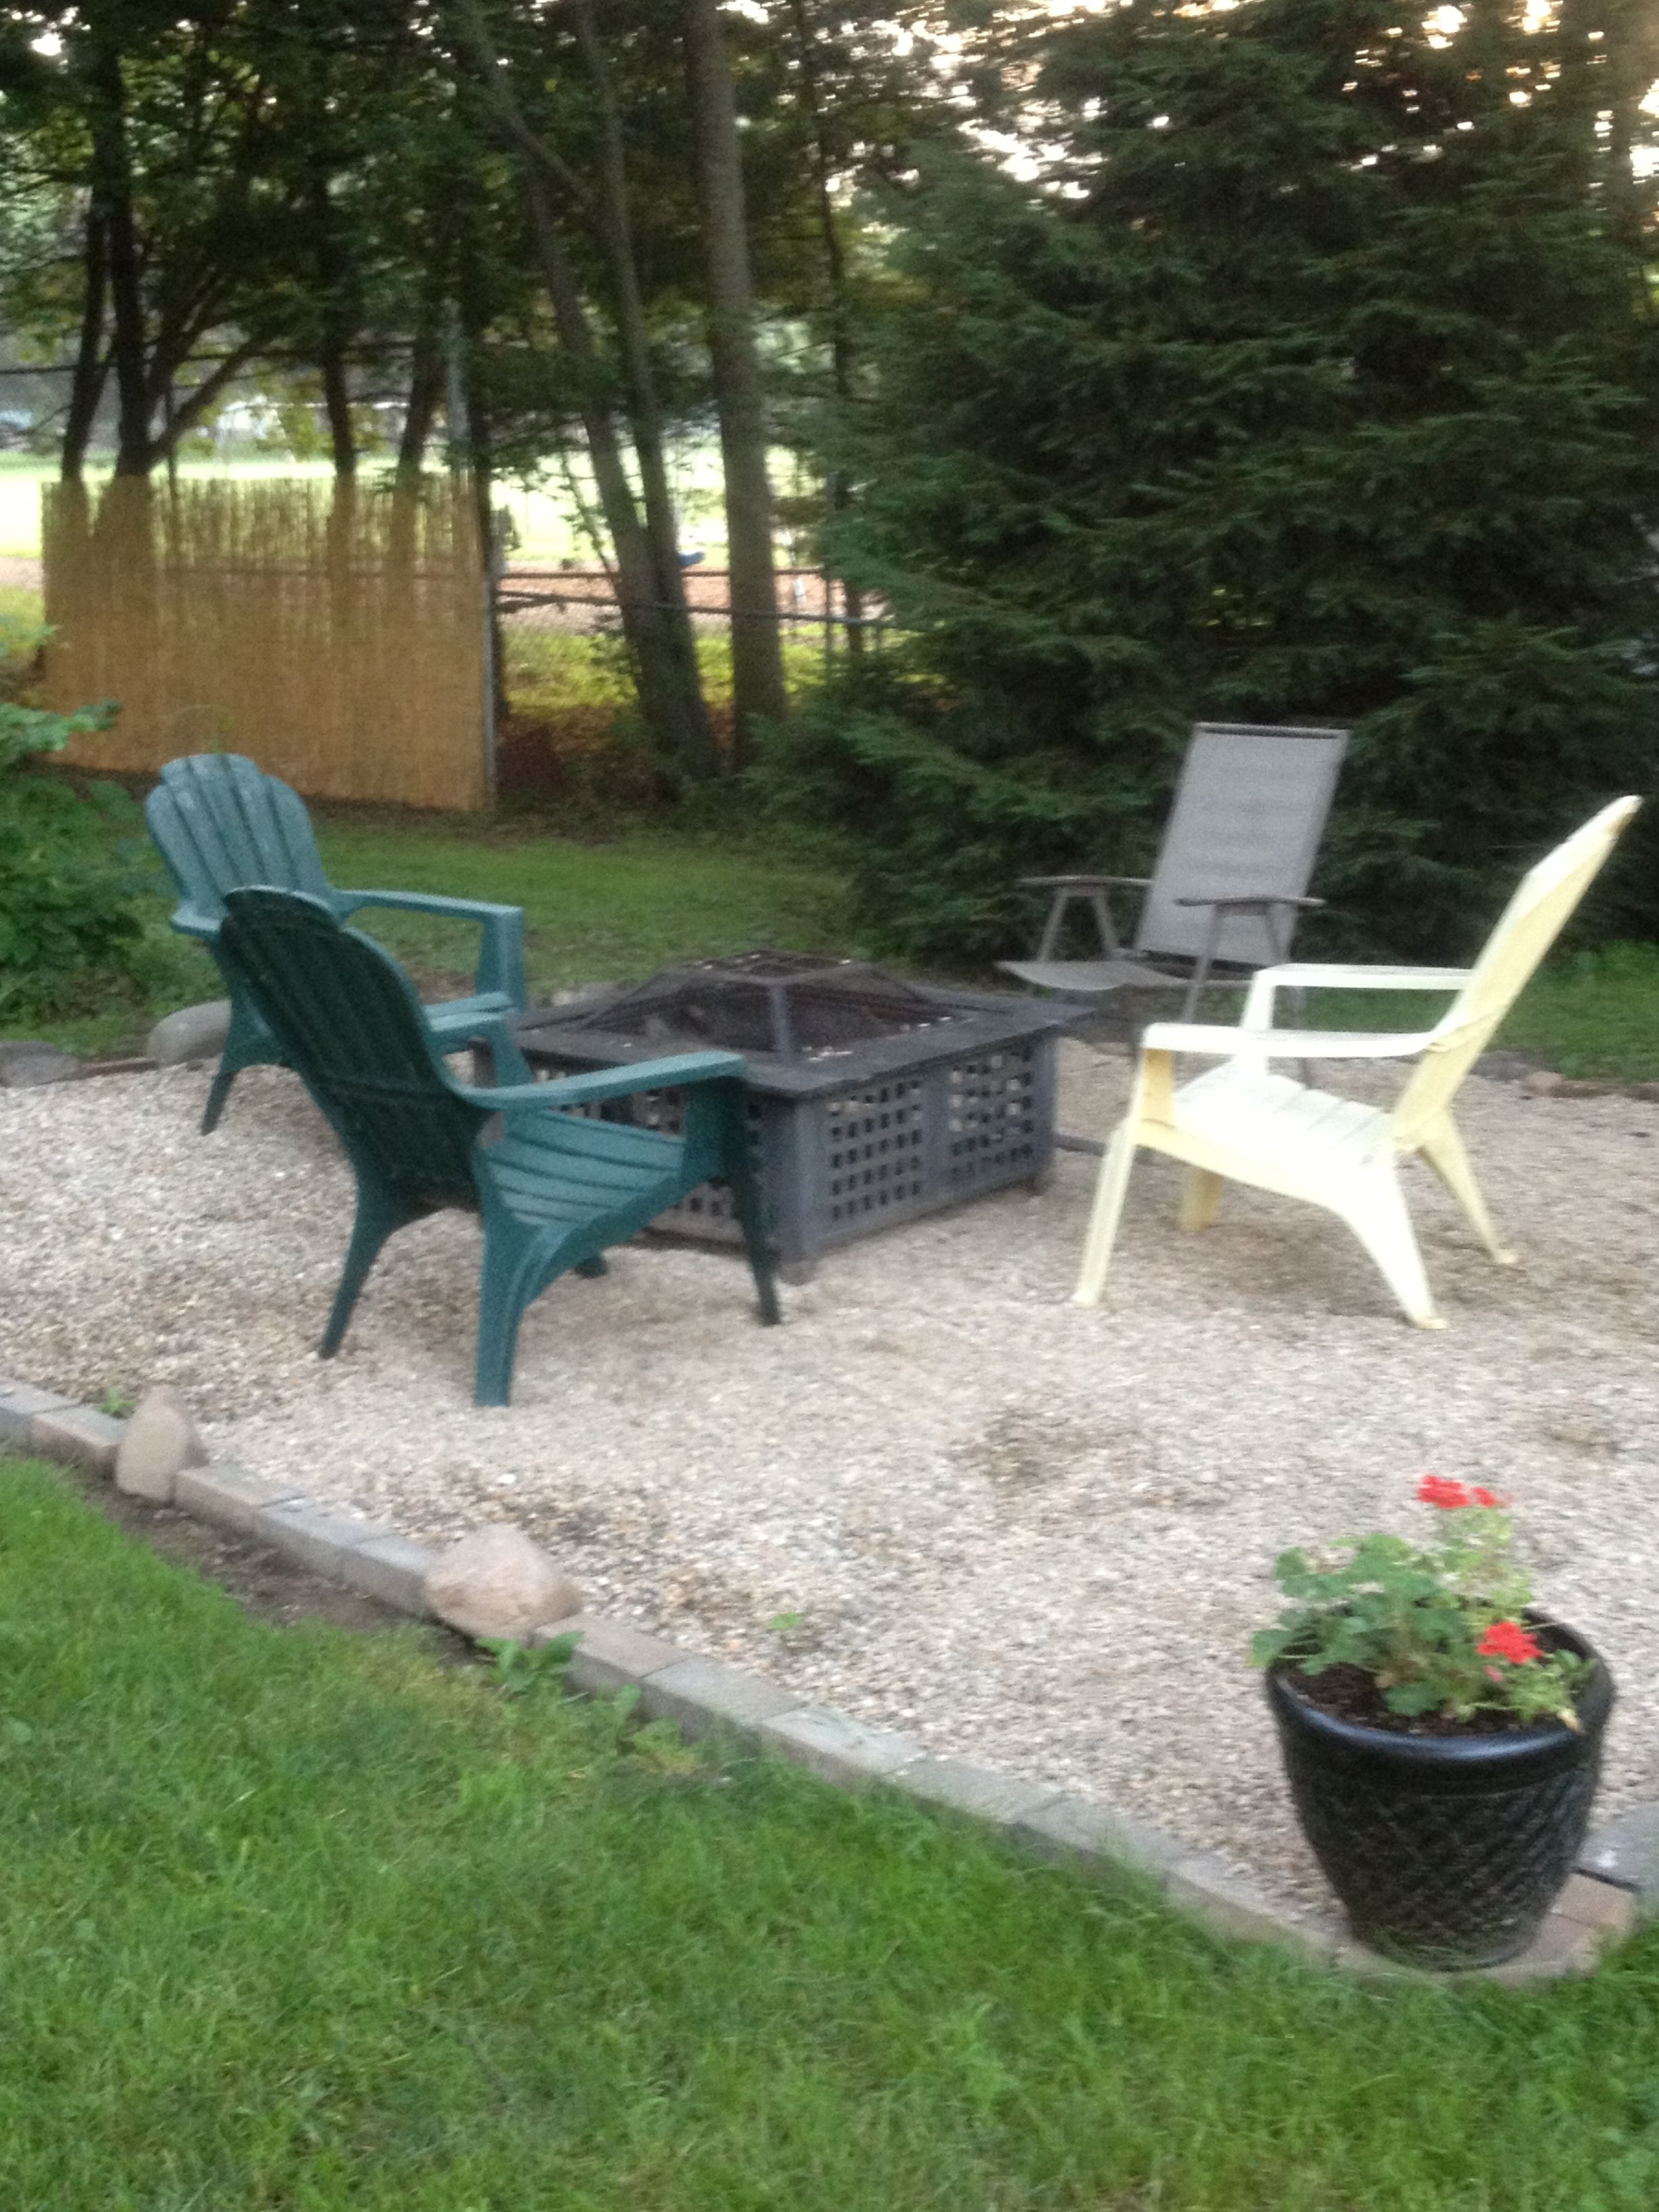 14x14 fire pit area complete! Used rocks and bricks from around the yard for the perimeter and about 1 1/2 yards of gravel for a base of about 2-3 inches deep.